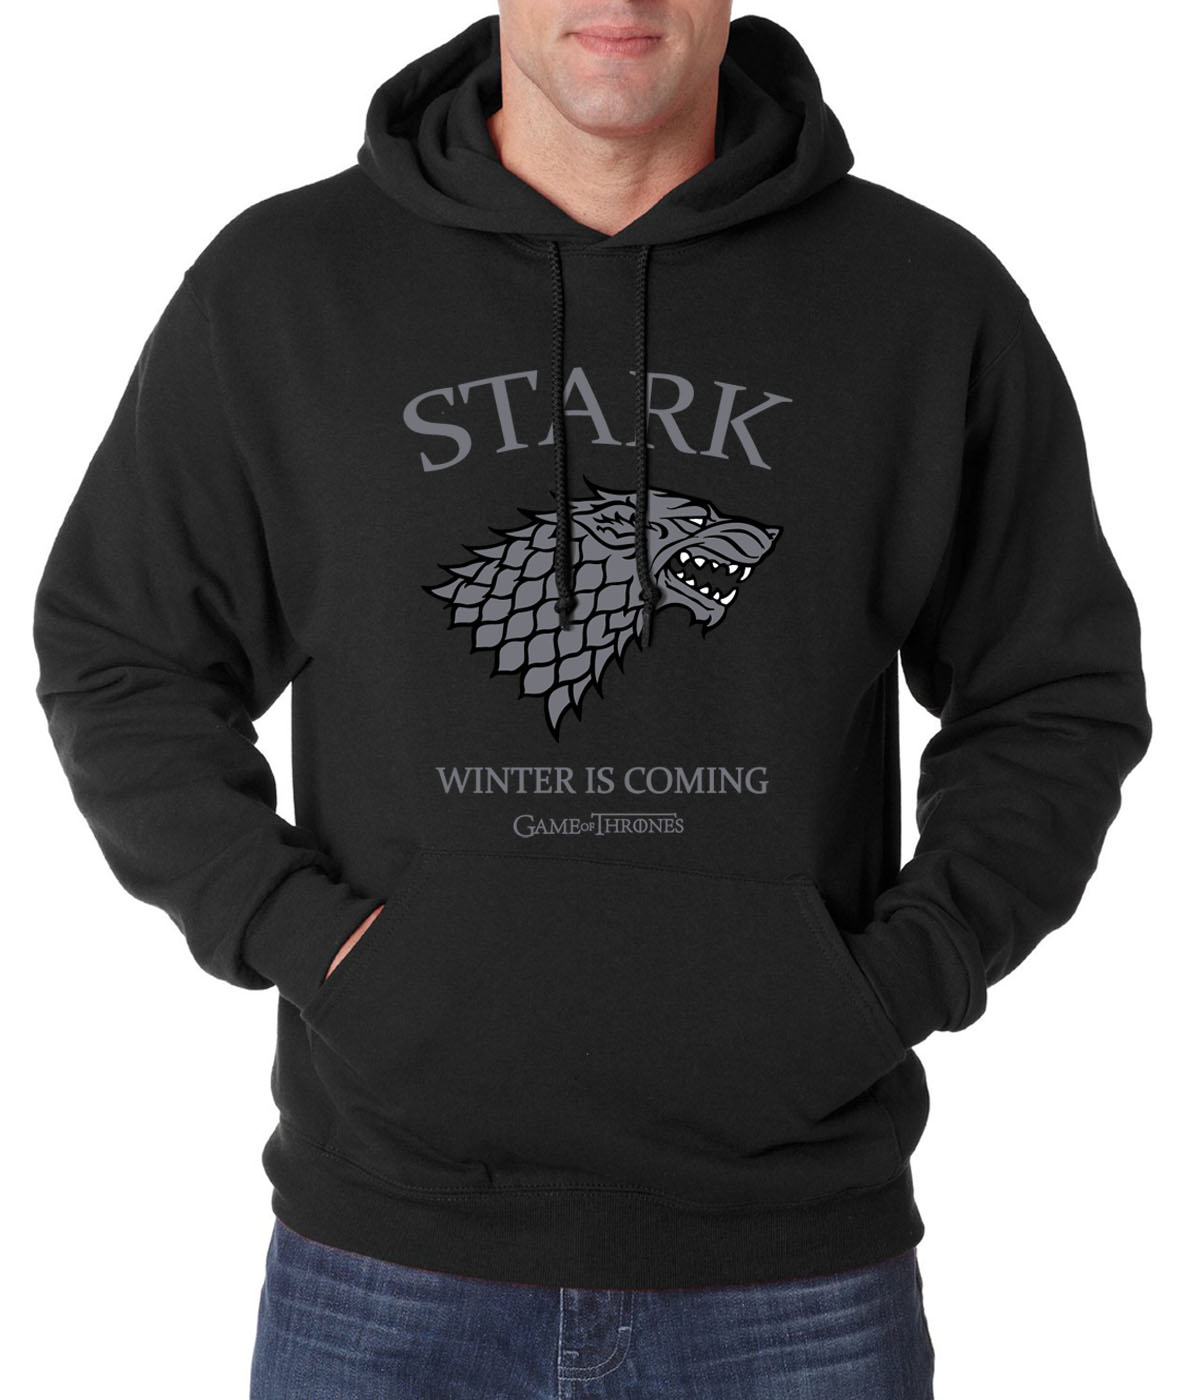 Game Of Thrones House Stark Winter Is Coming Printed Hoodies Men 2019 Spring Hoodie Sweatshirt Men Fleece Hip Hop Sportswear